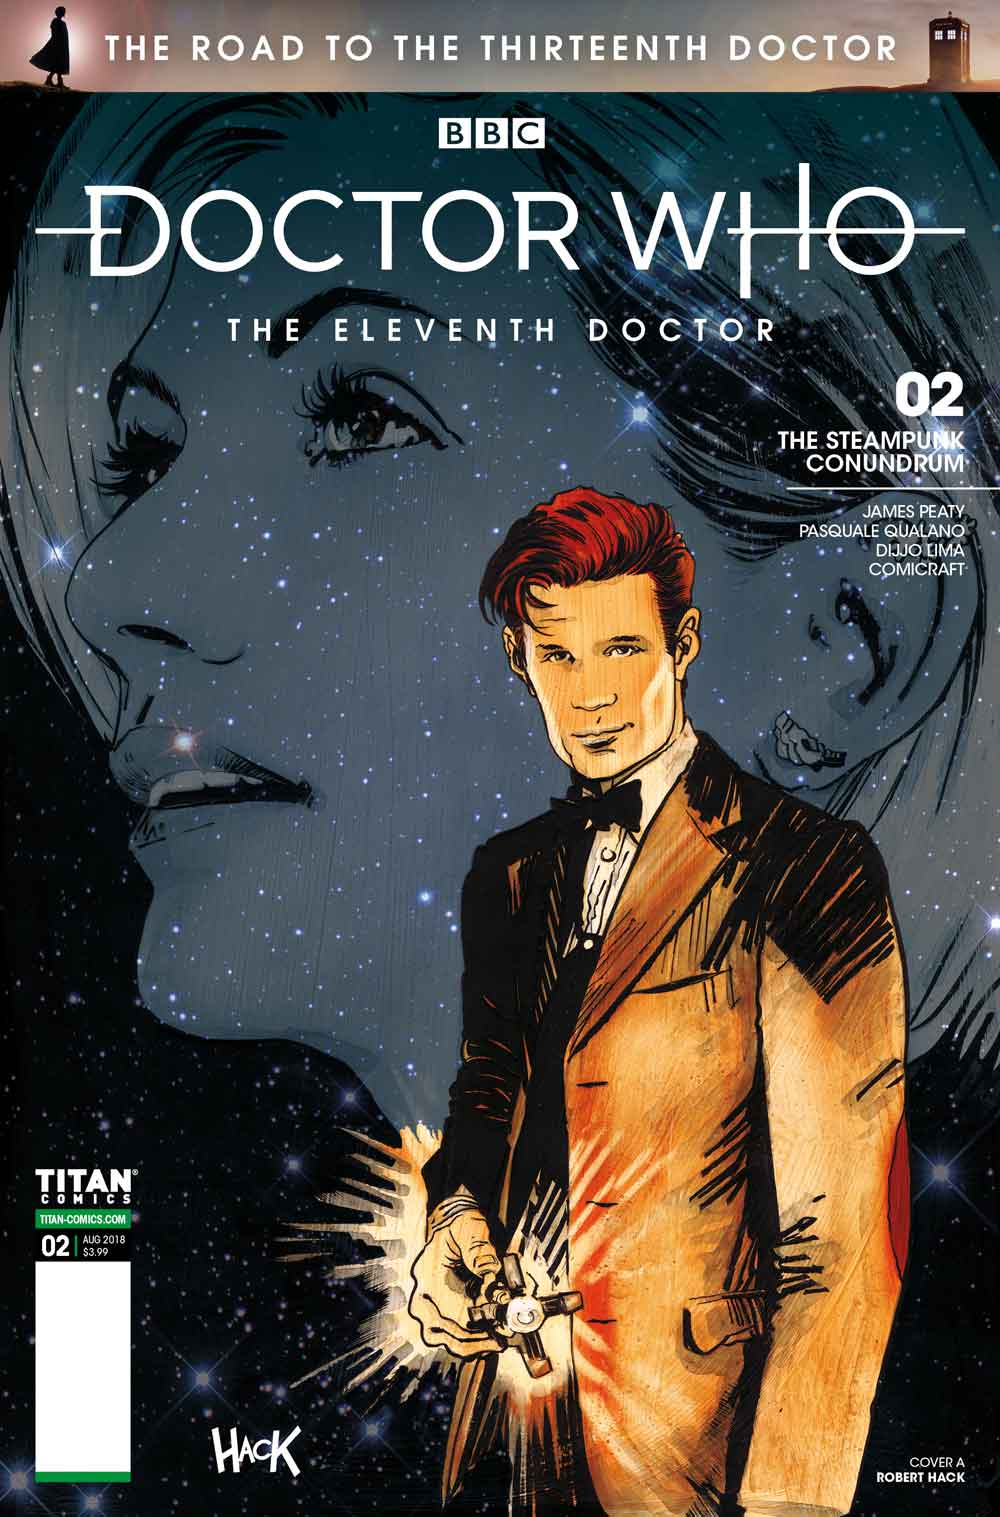 Zbox Exclusive Cover New BBC Doctor Who #1 The Thirteenth Doctor Comic